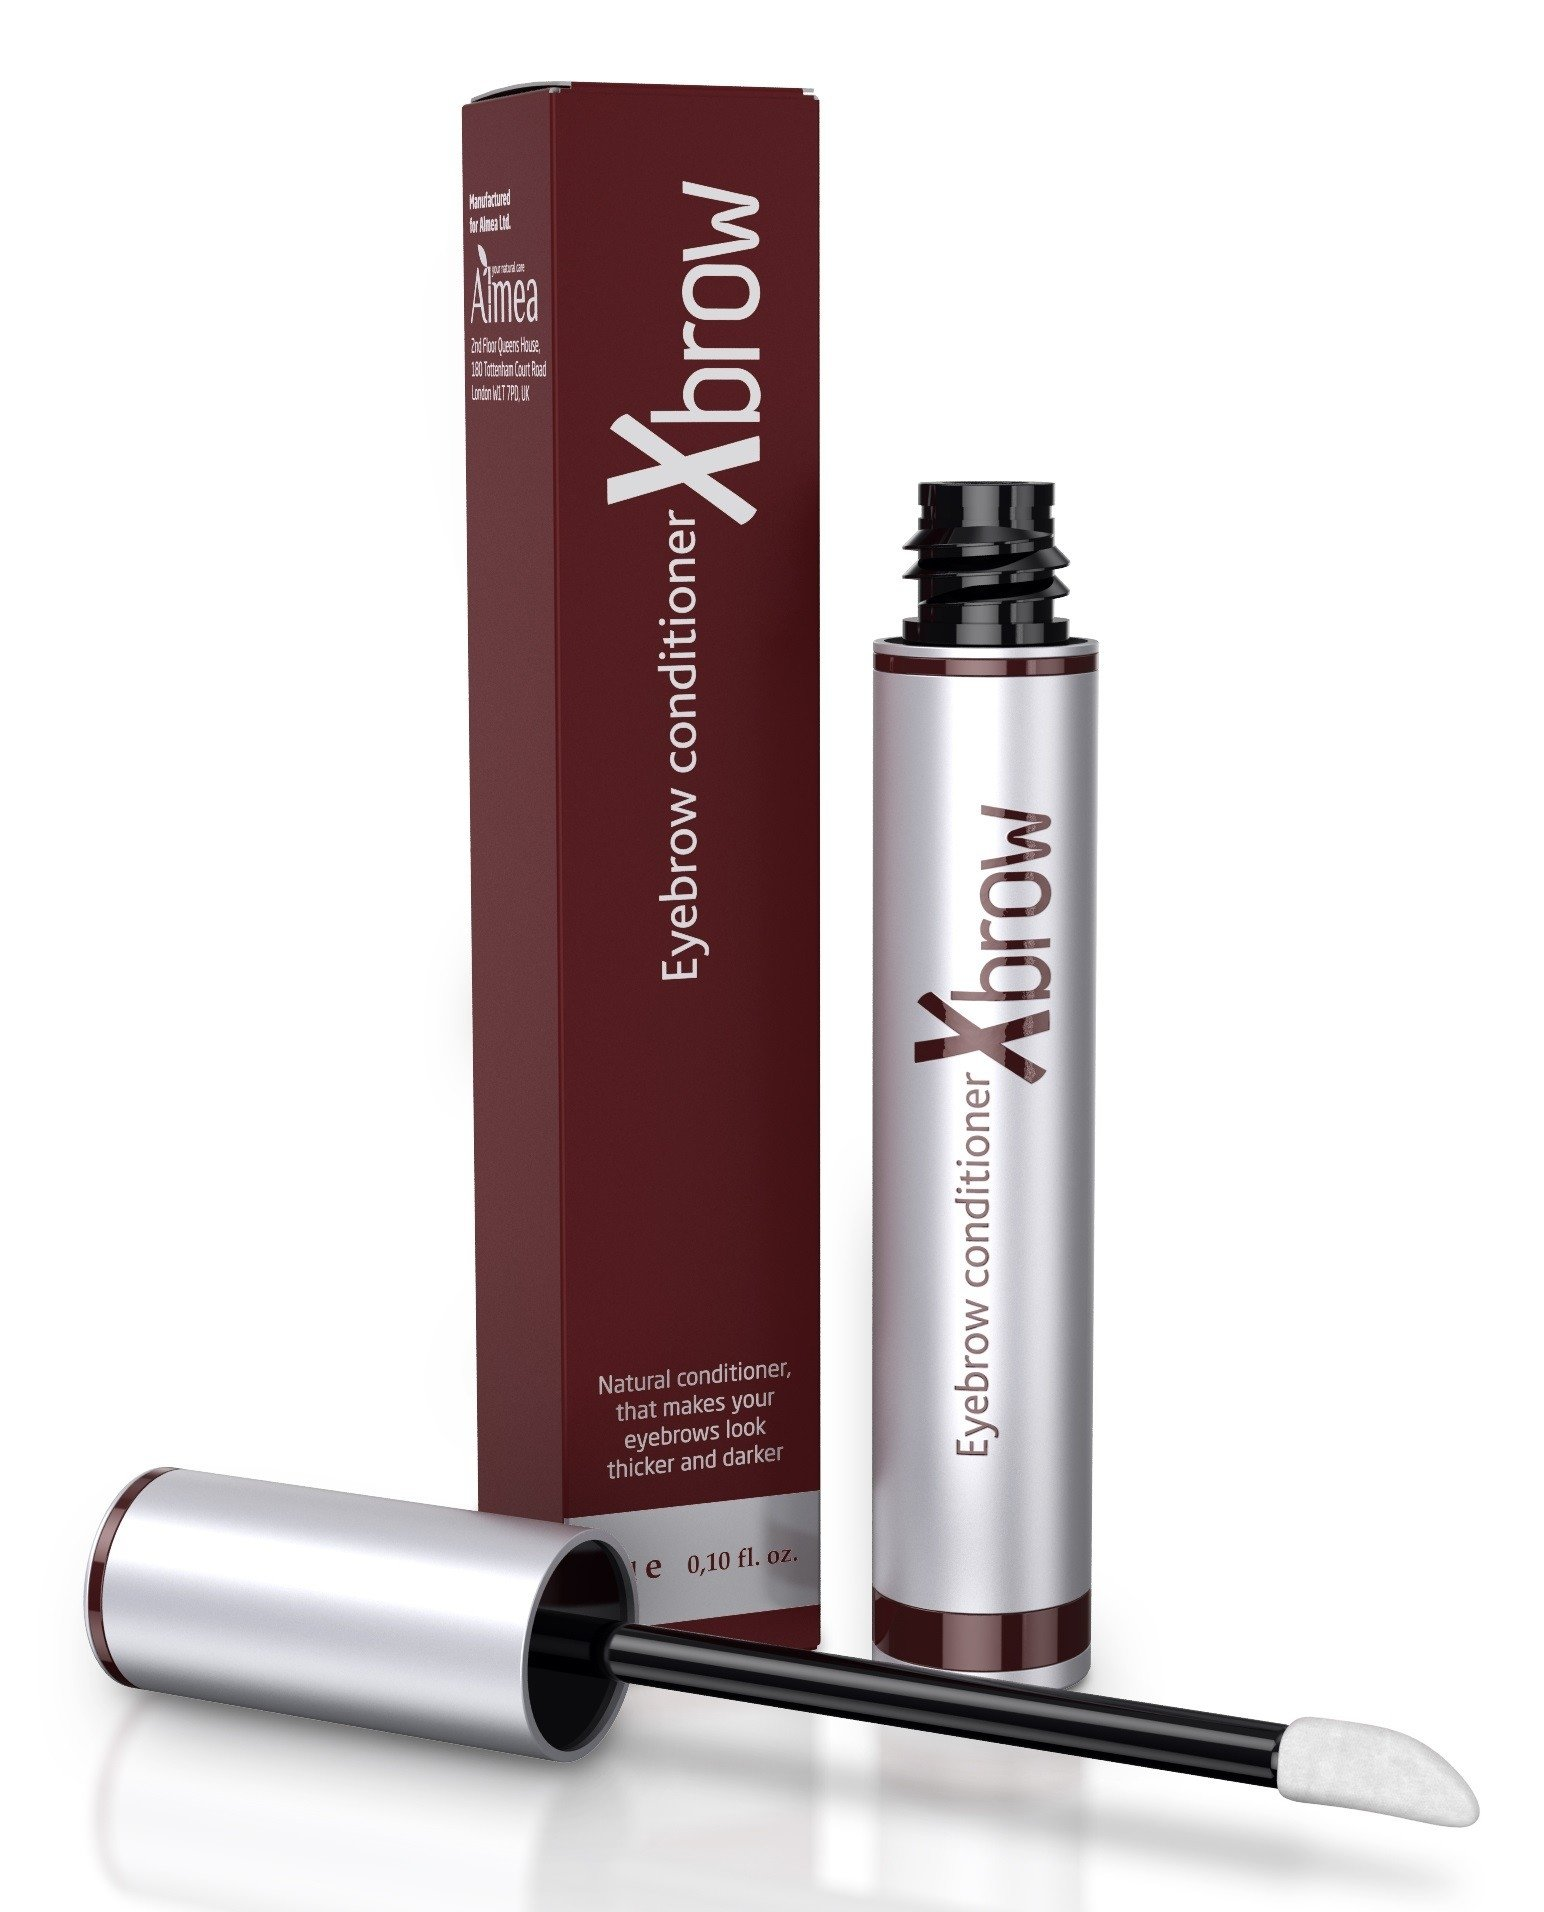 Almea Xbrow Conditioner For The Growth Of The Eyebrows Buy